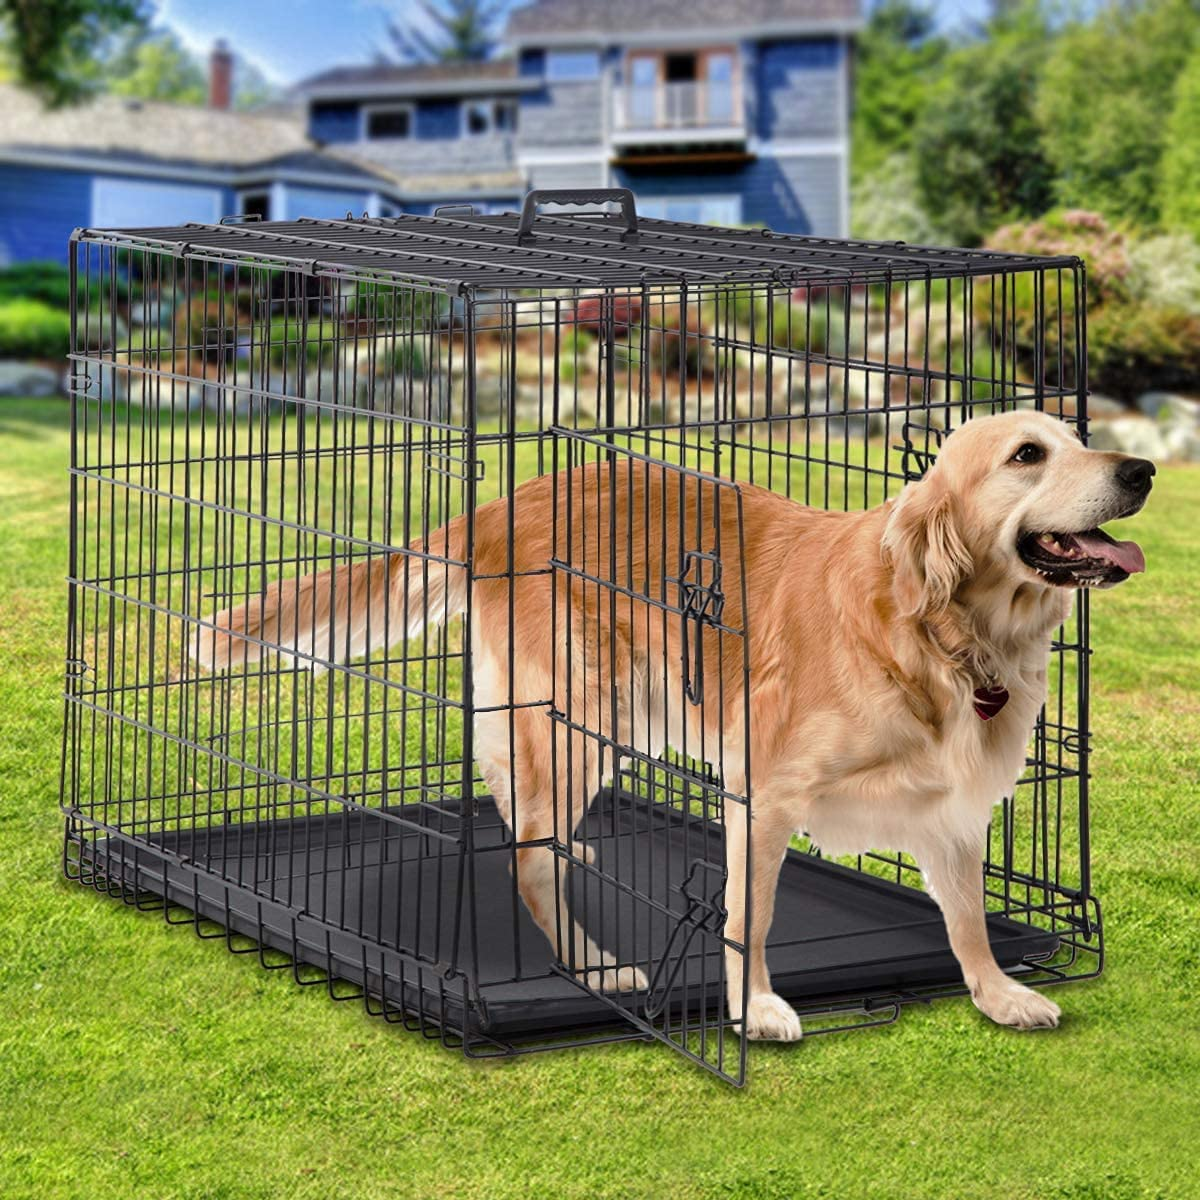 Tyyps Large Dog Crate Kennel 48 Inch Metal Wire Dog Crate